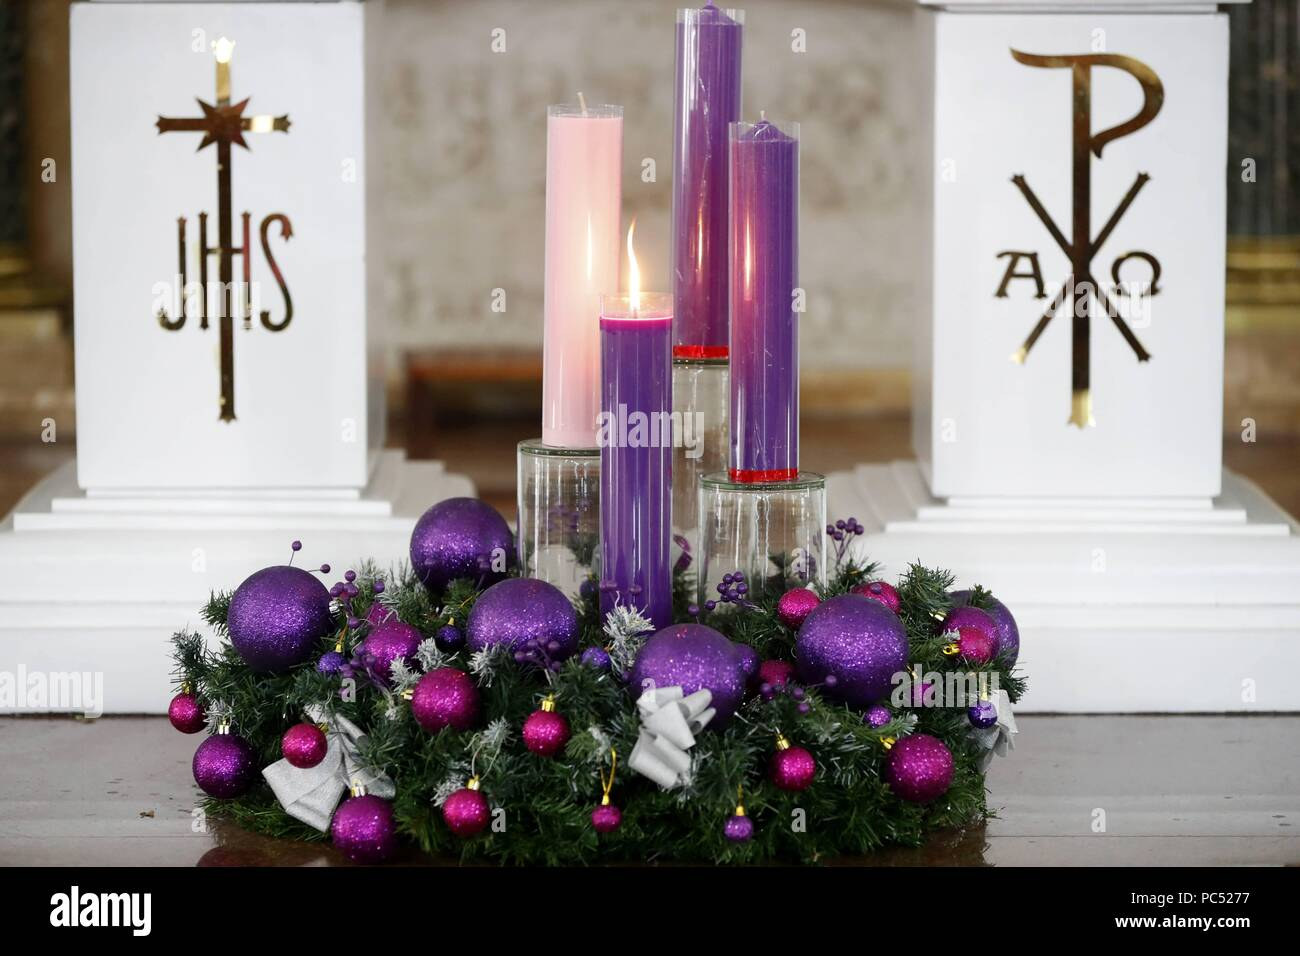 Church Of The Sacred Heart Of Jesus Nha Tho Tan Dinh Advent Wreath With Candles Ho Chi Minh City Vietnam Usage Worldwide Stock Photo Alamy